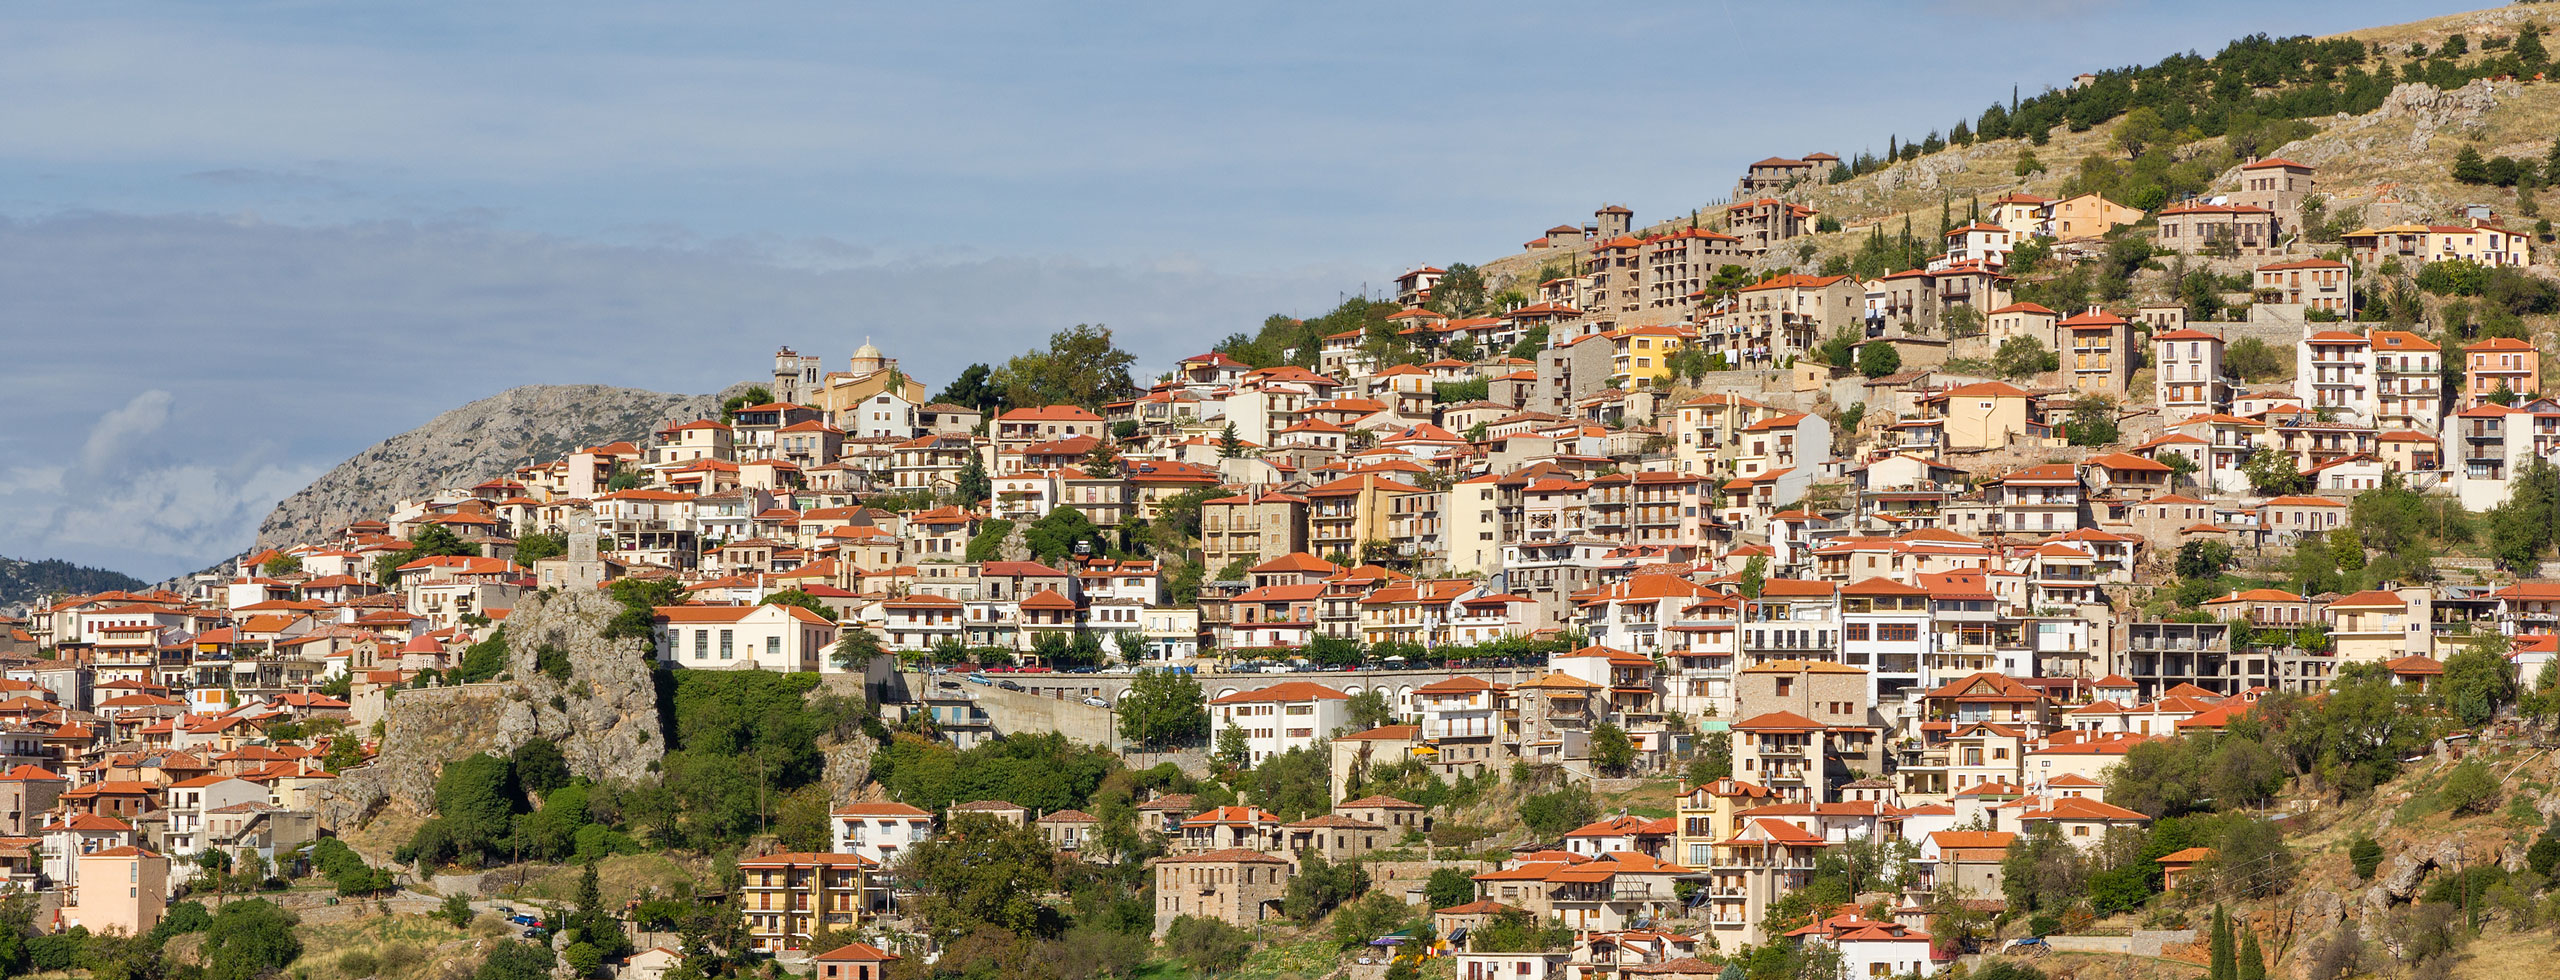 Arachova Greece  City pictures : Arachova Greece, Arachova hotels, villas, tours, sites, restaurants ...